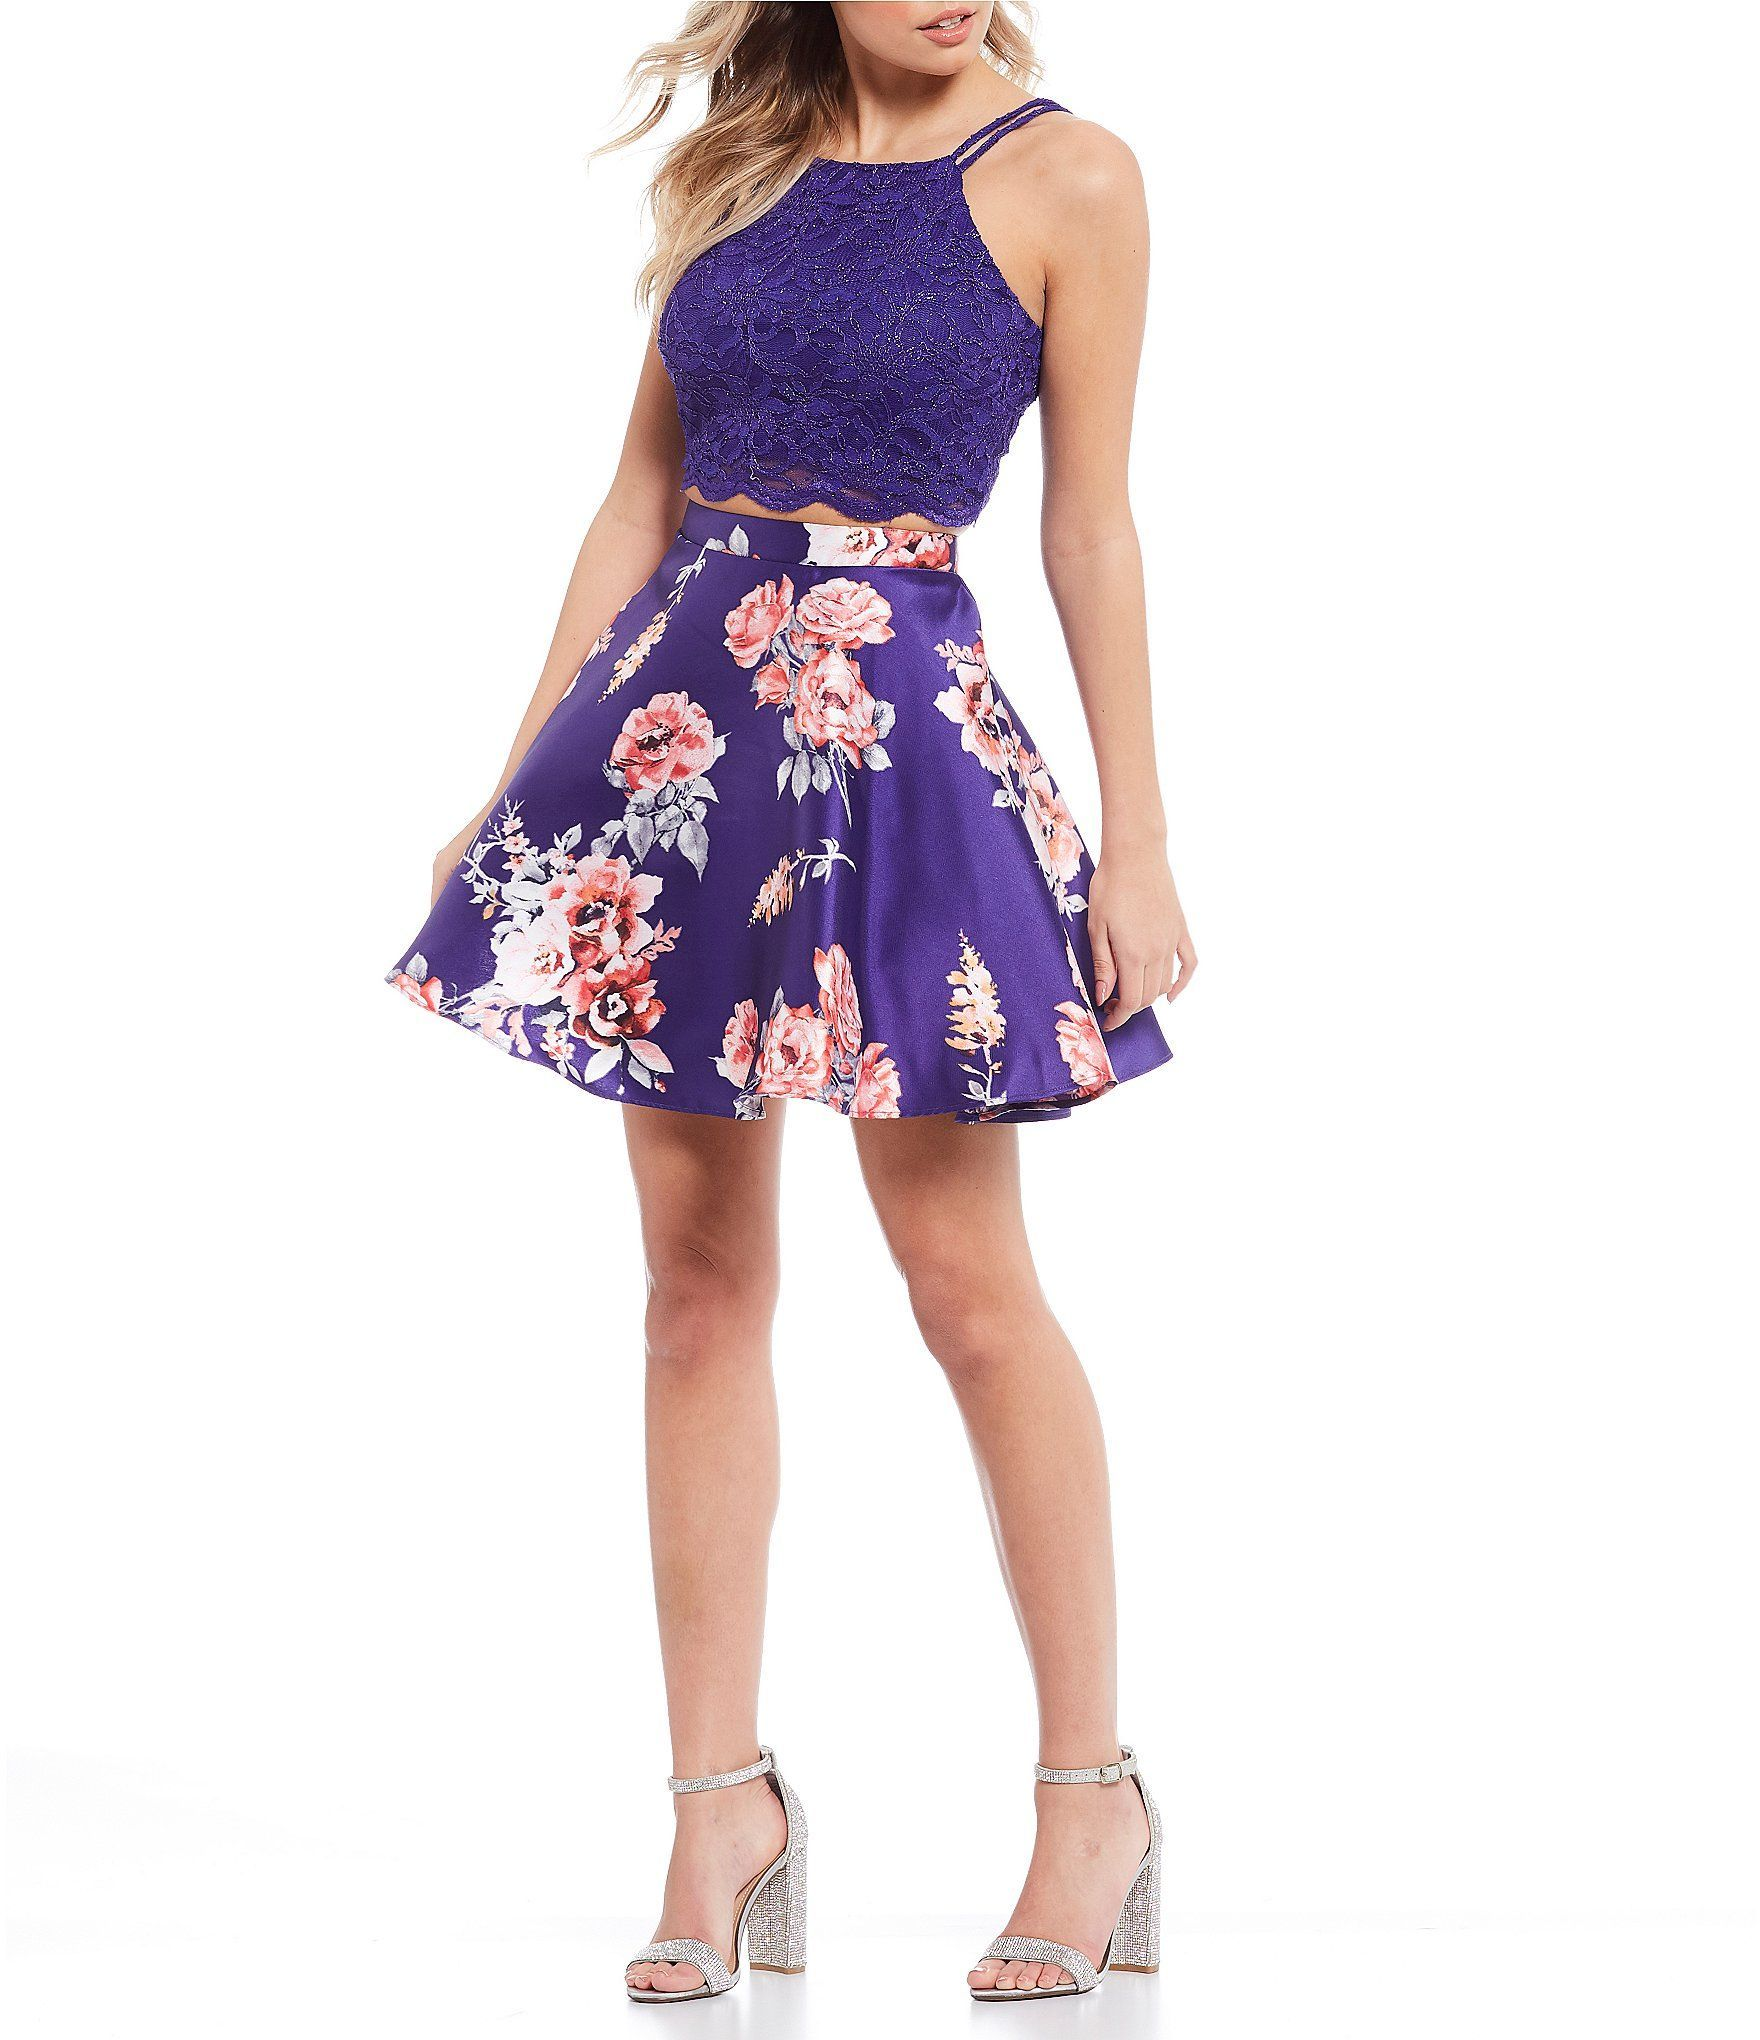 City Vibe Spaghetti Strap Lace Top With Floral Skirt Two Piece Dress Two Piece Dress Cute Homecoming Dresses Cute Dresses For Teens [ 2040 x 1760 Pixel ]